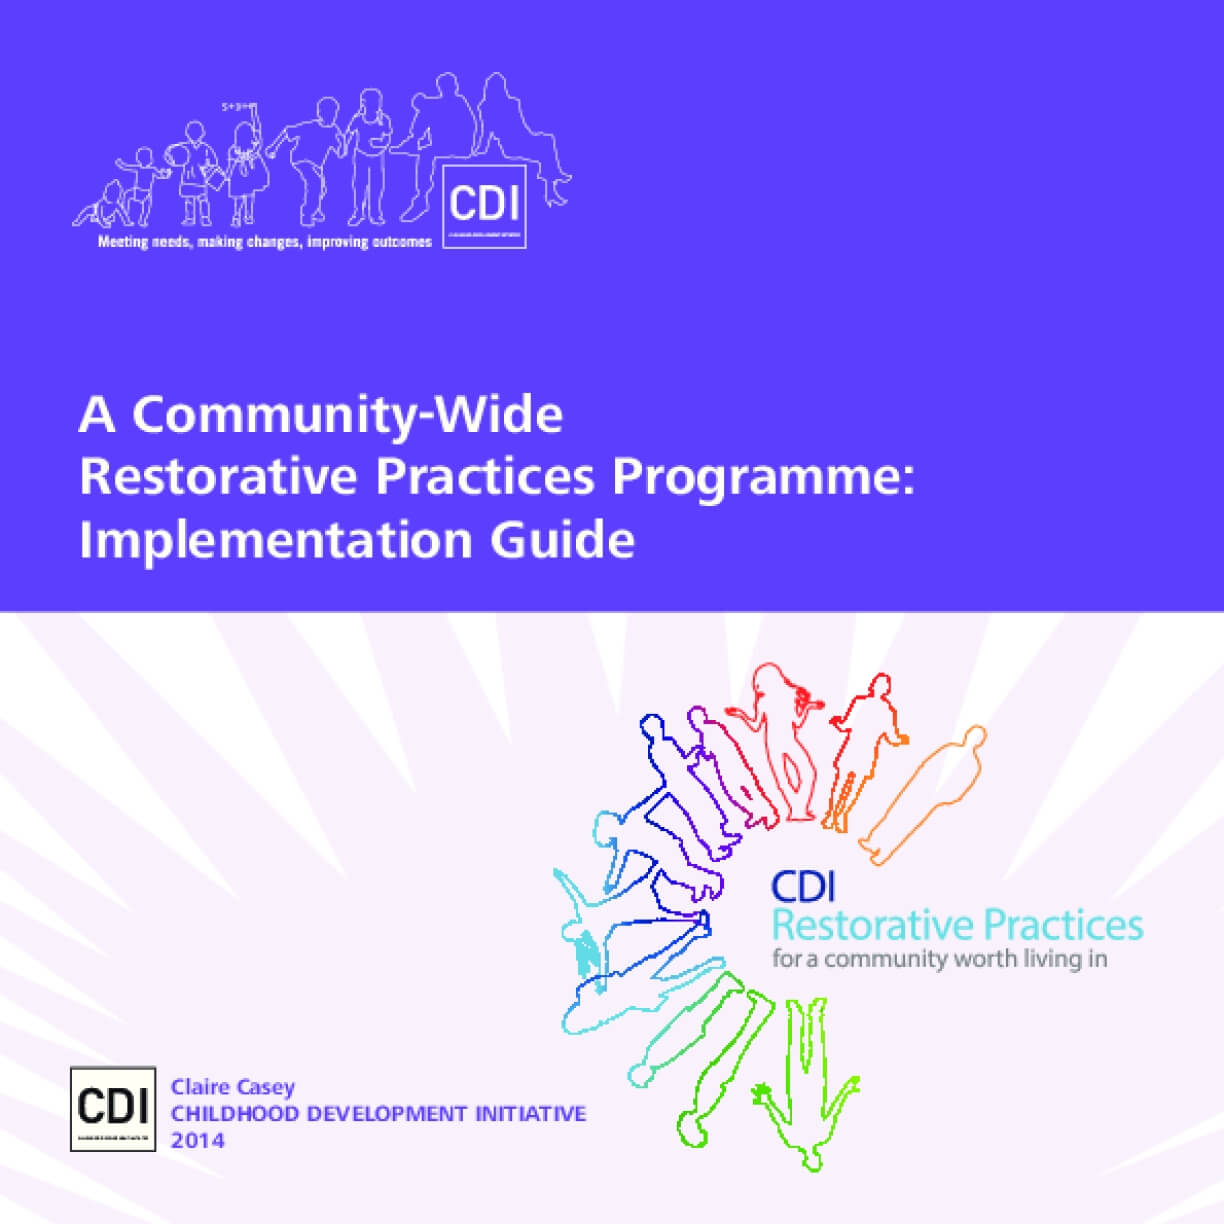 A Community-Wide Restorative Practices Programme: Implementation Guide